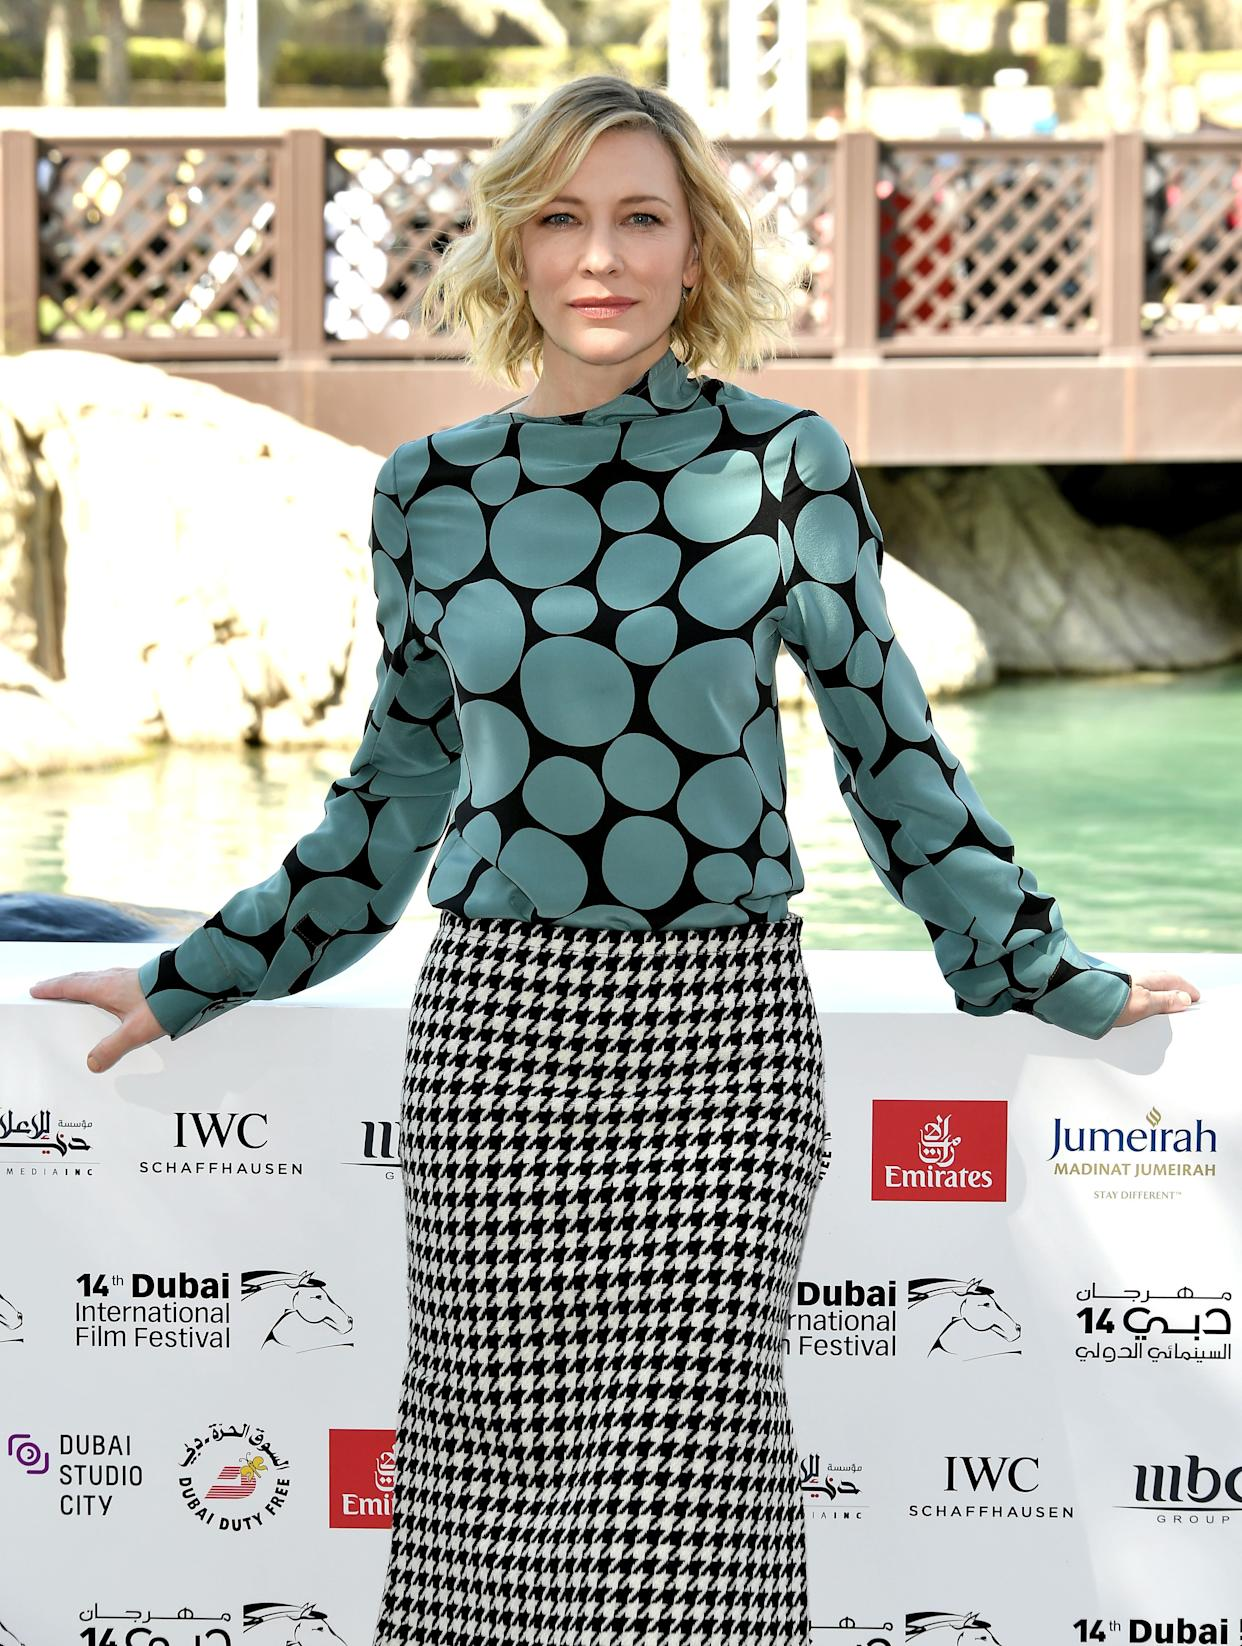 DUBAI, UNITED ARAB EMIRATES - DECEMBER 07: Cate Blanchett attends the IWC Photocall on day two of the 14th annual Dubai International Film Festival held at the Madinat Jumeriah Complex on December 7, 2017 in Dubai, United Arab Emirates. (Photo by Neilson Barnard/Getty Images for DIFF,)